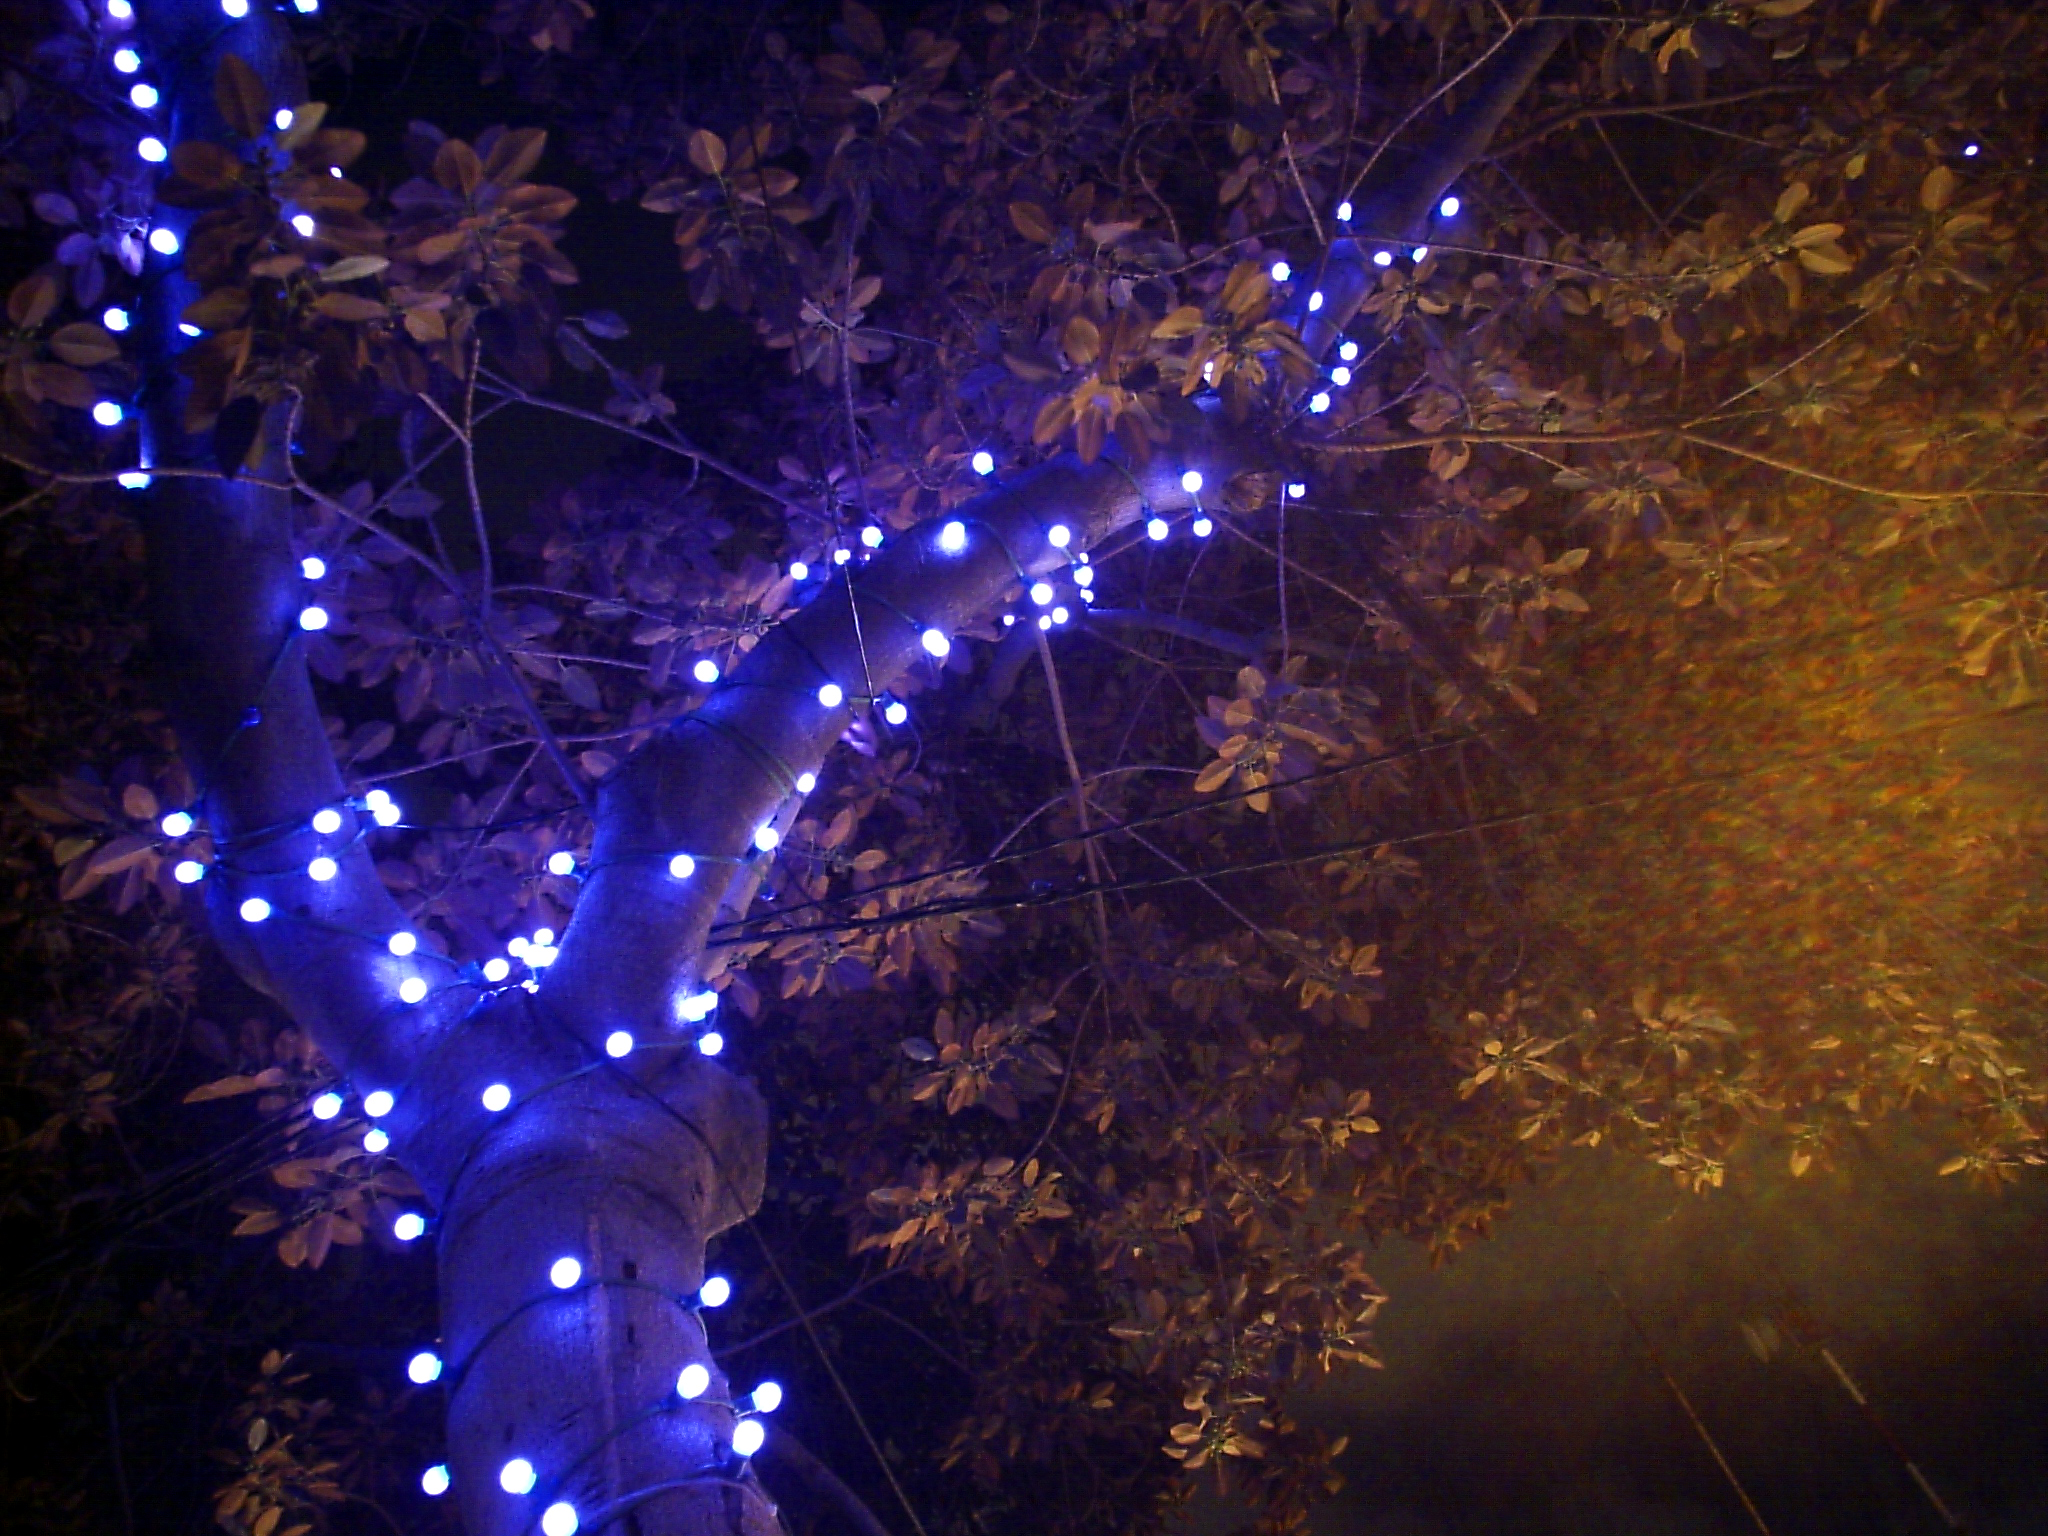 Darkness, Holiday Blues, and What it's About